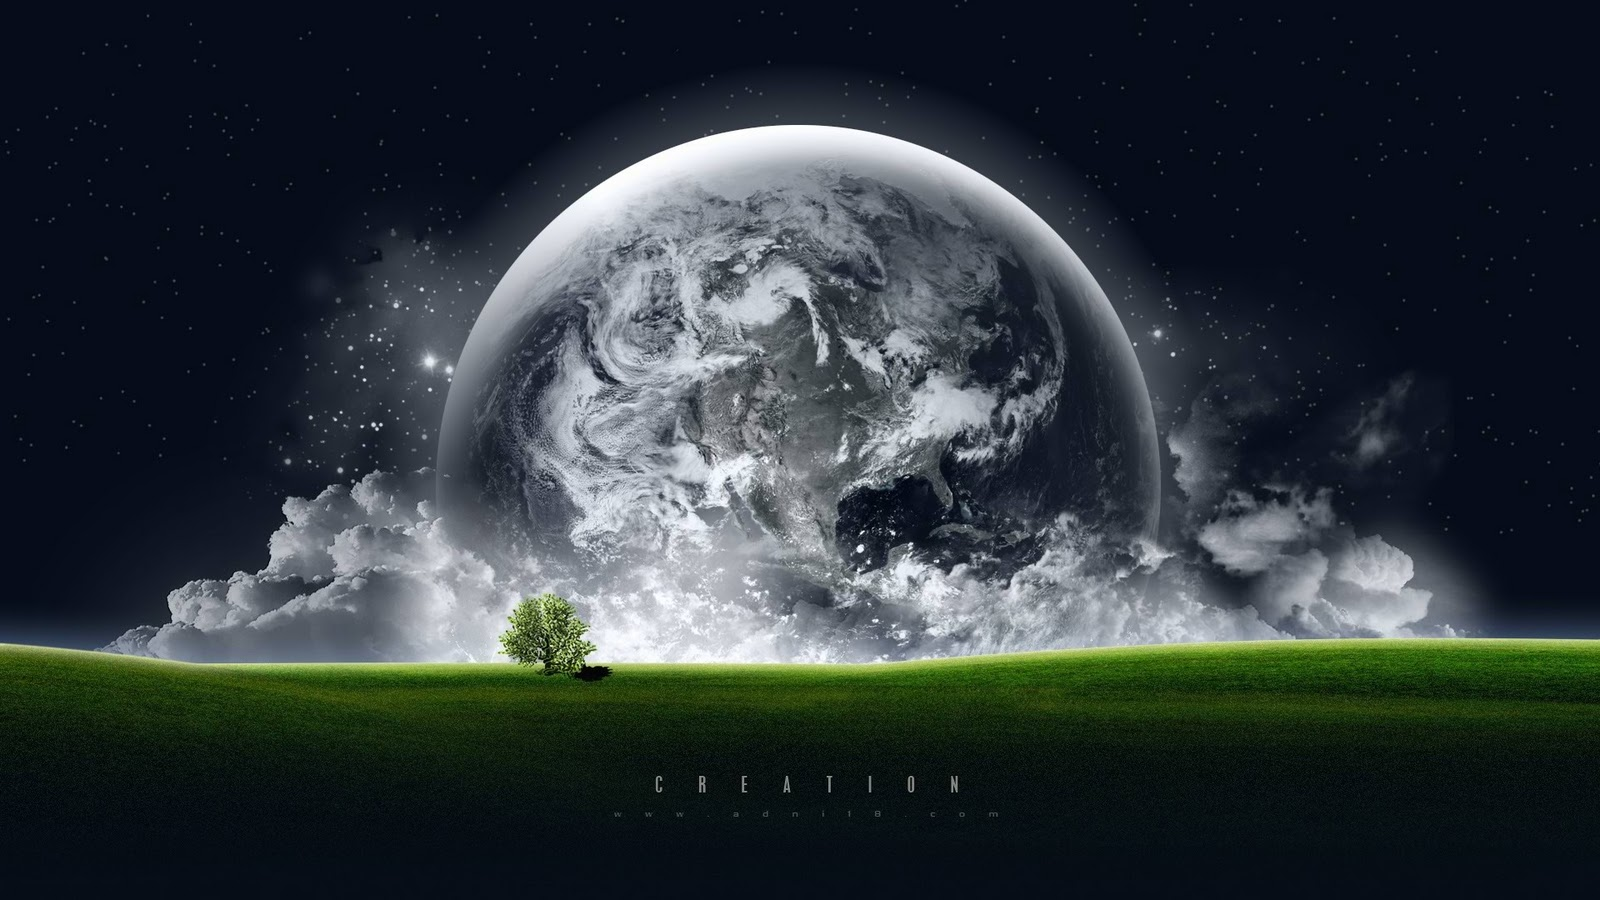 new wallpaper 10 amazing earth wallpapers on behalf of